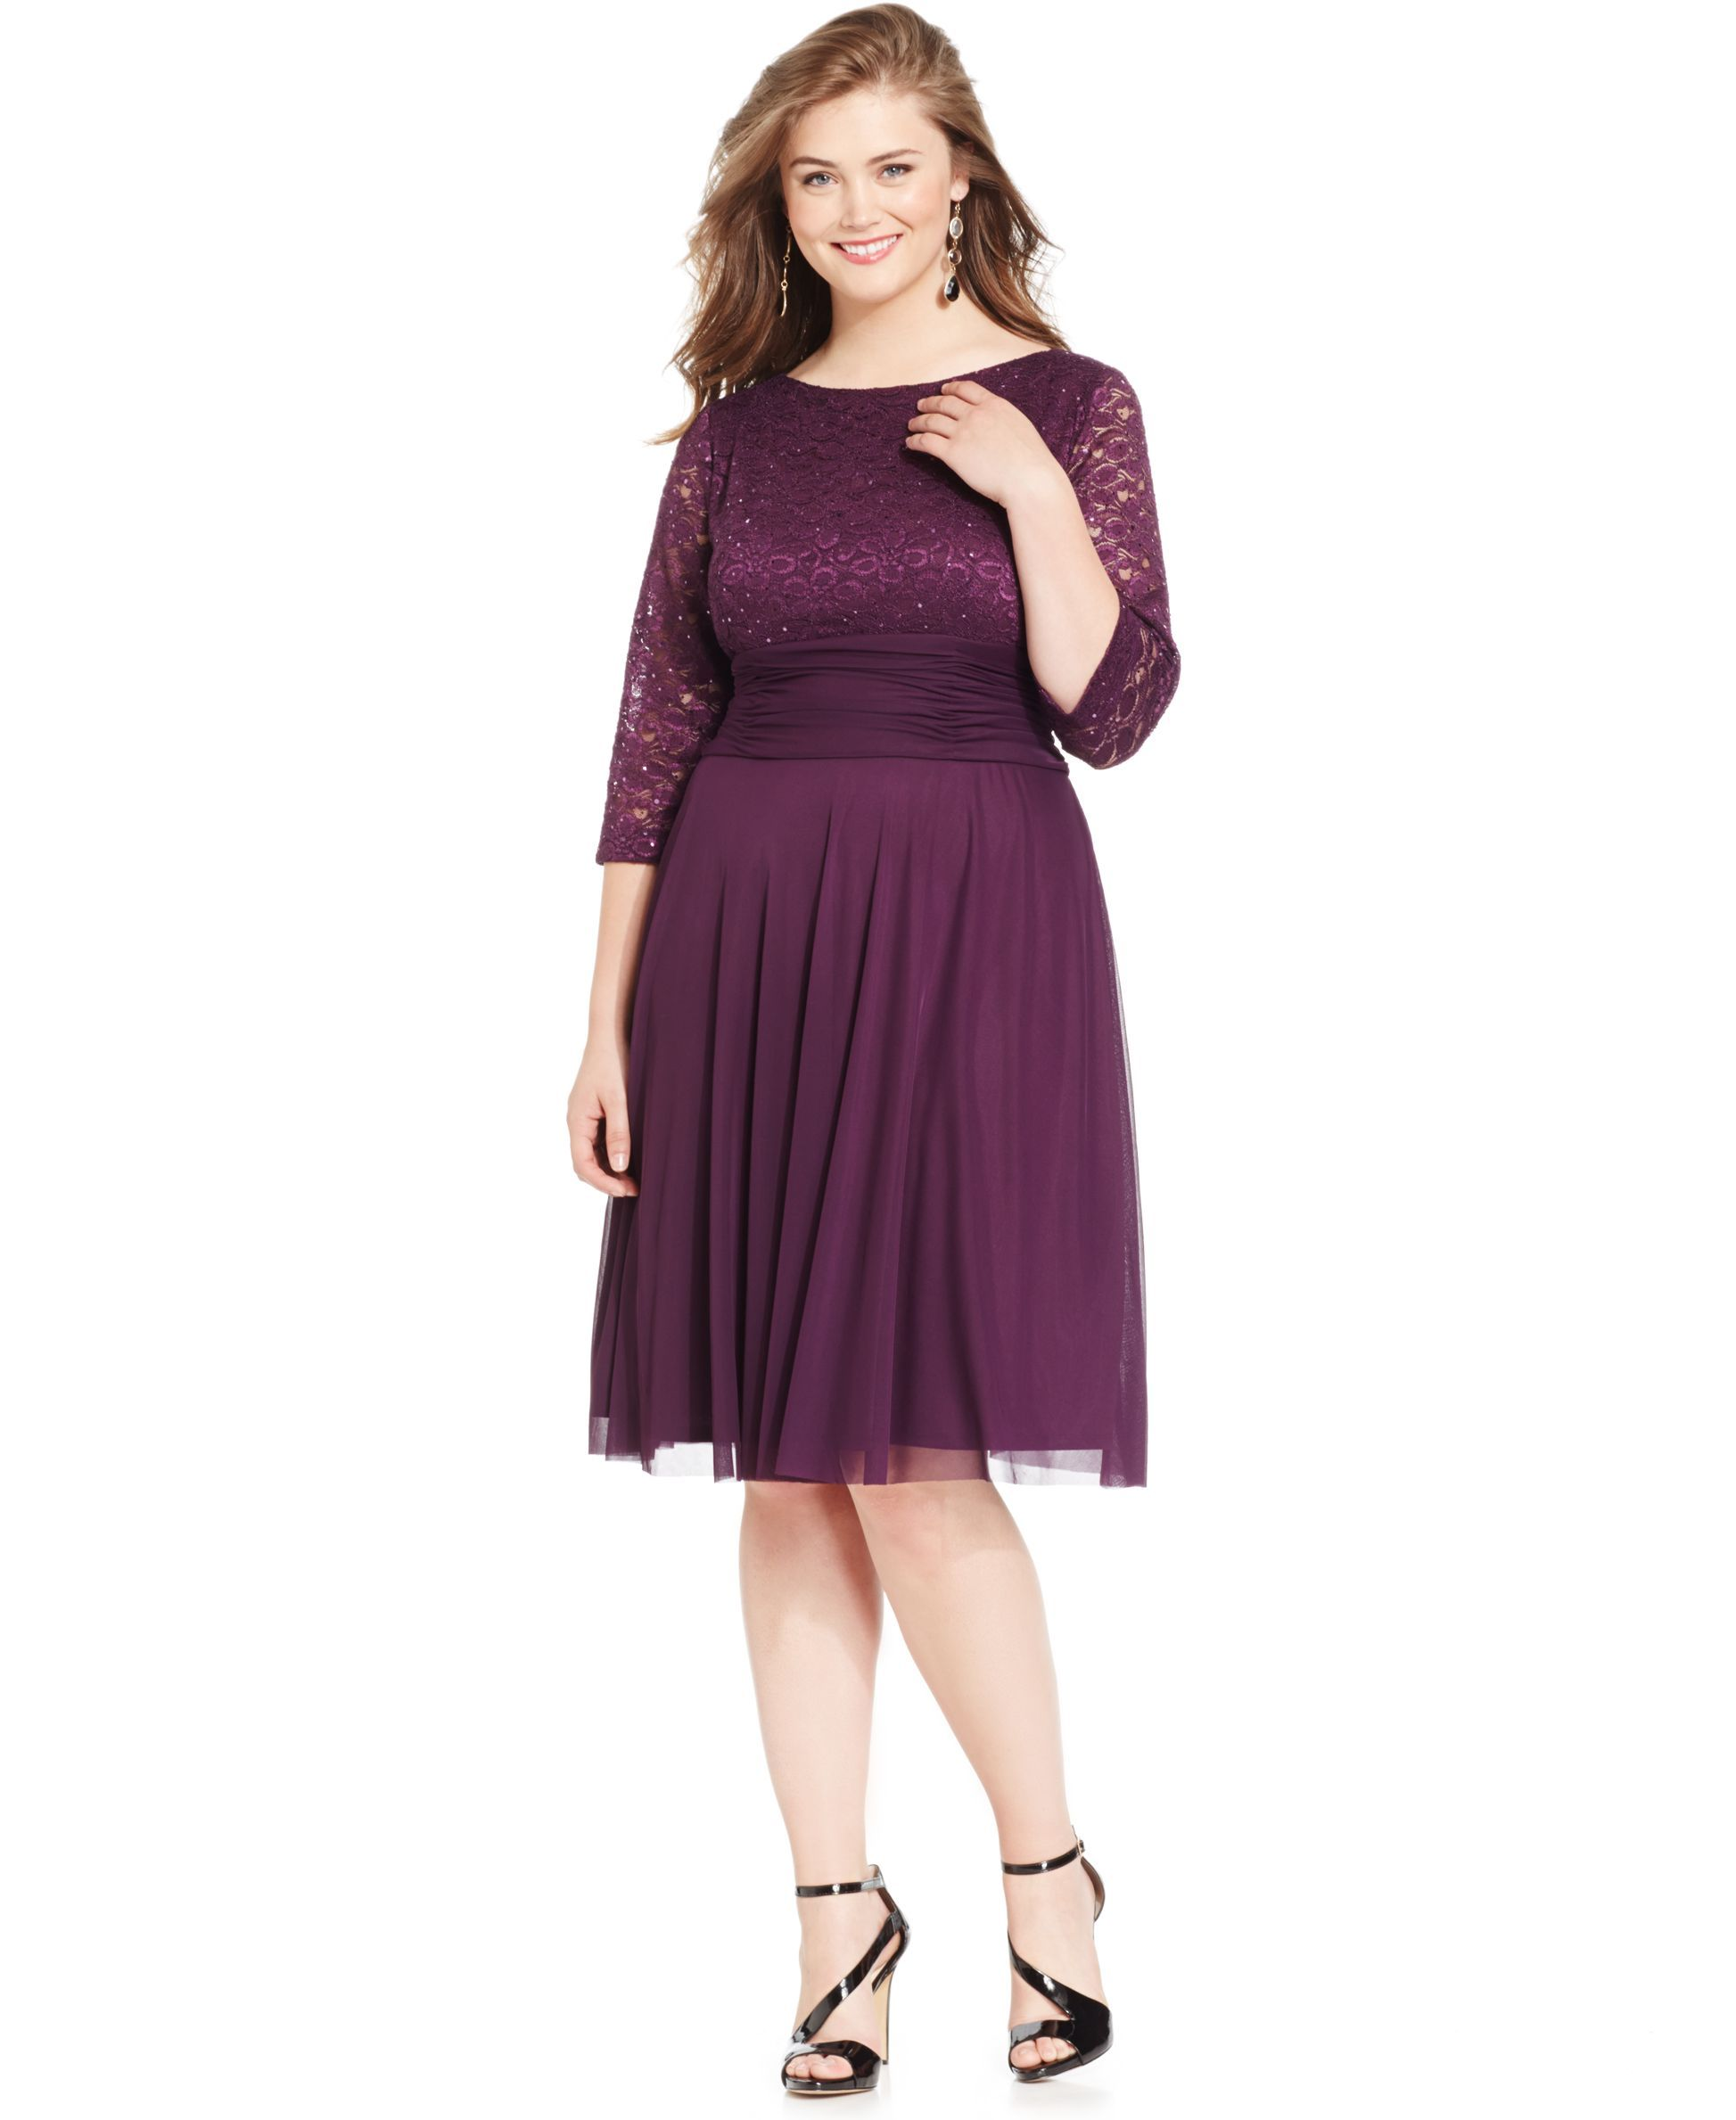 ab254e17c15 Jessica Howard Plus Size Lace Ruched Dress